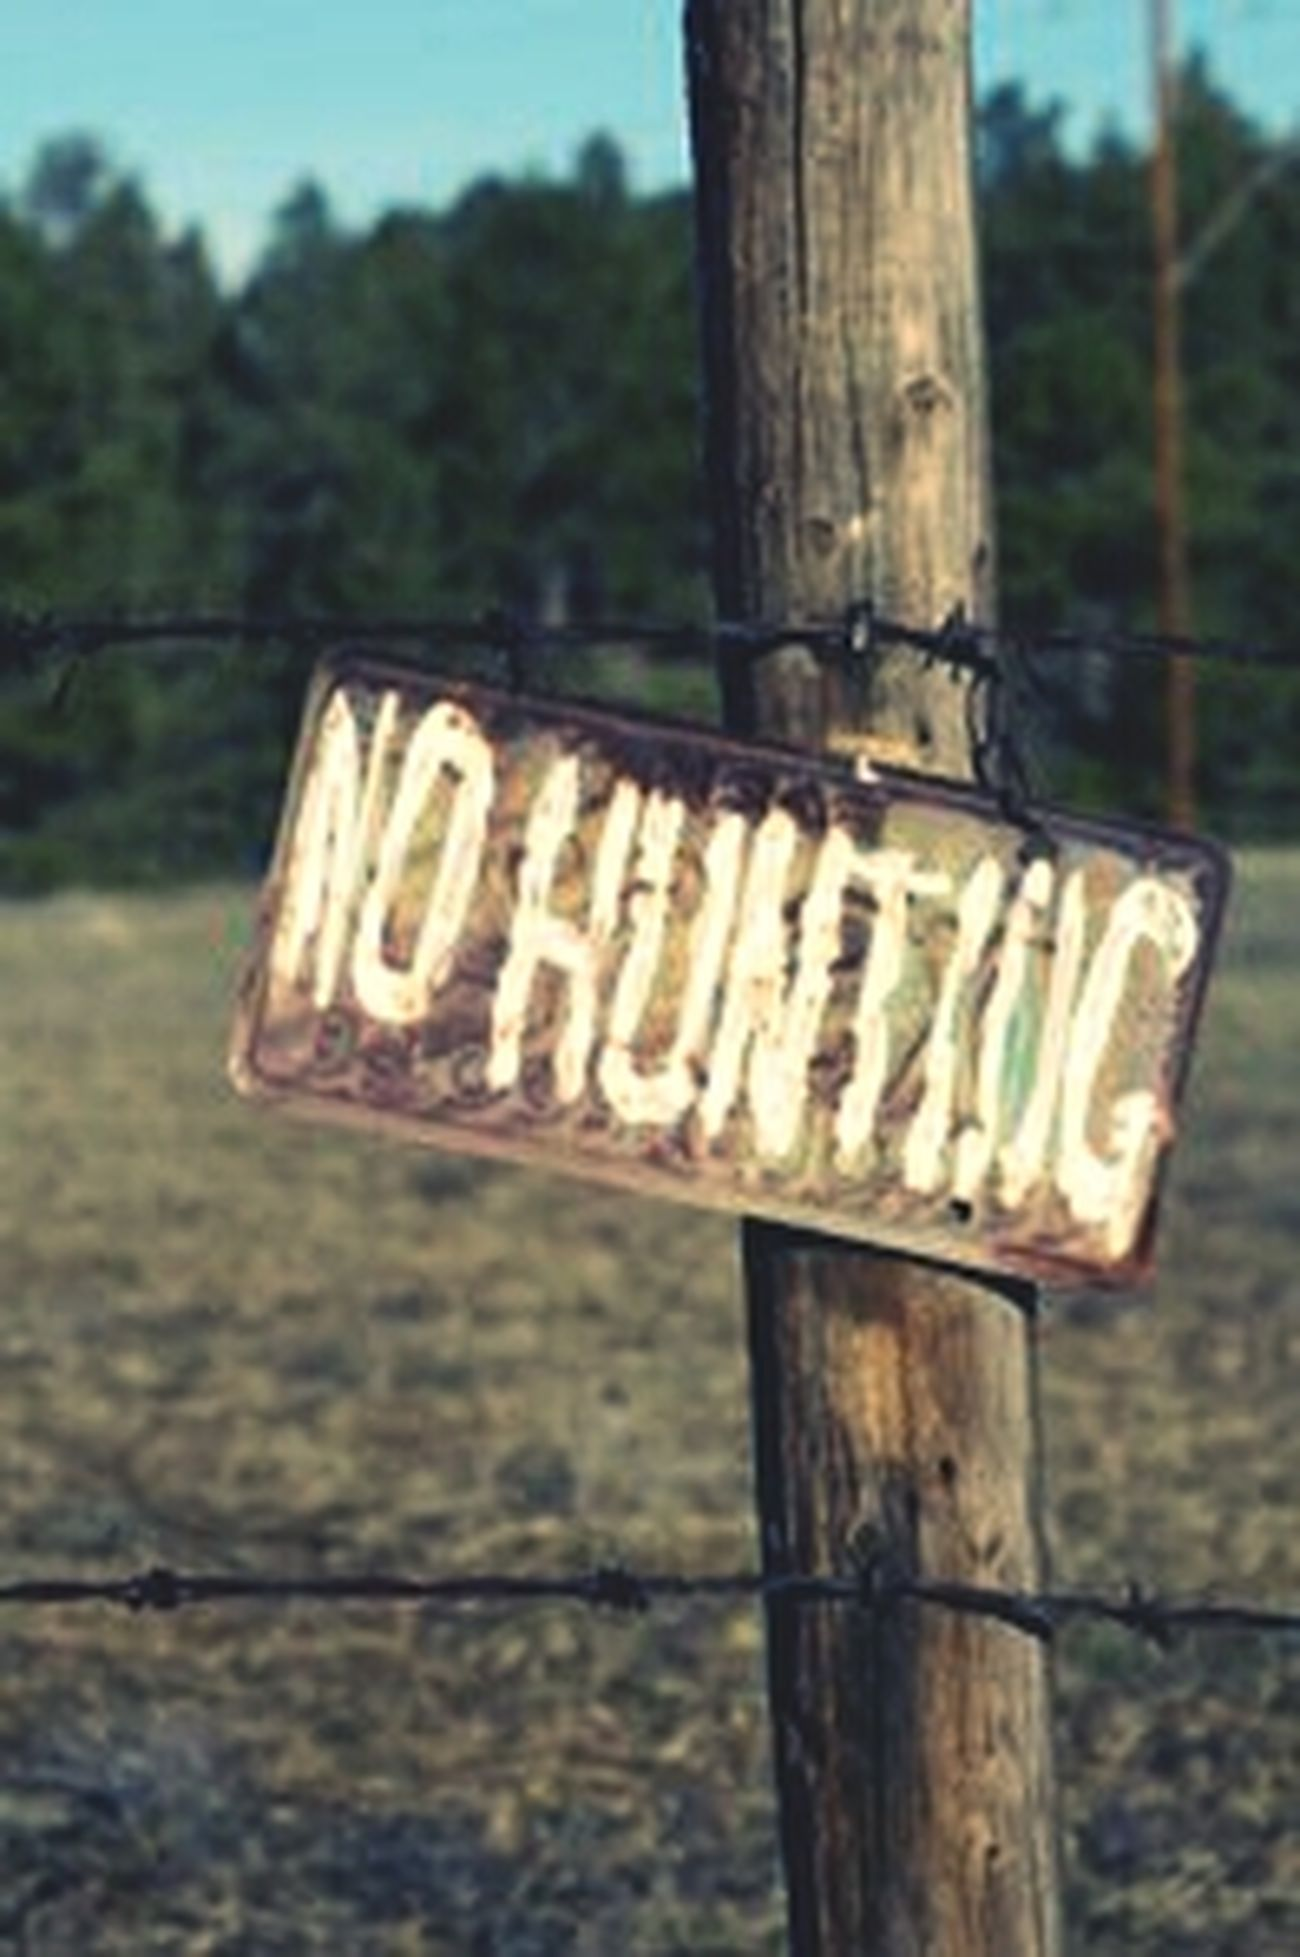 Hunting No Hunting Its The Law